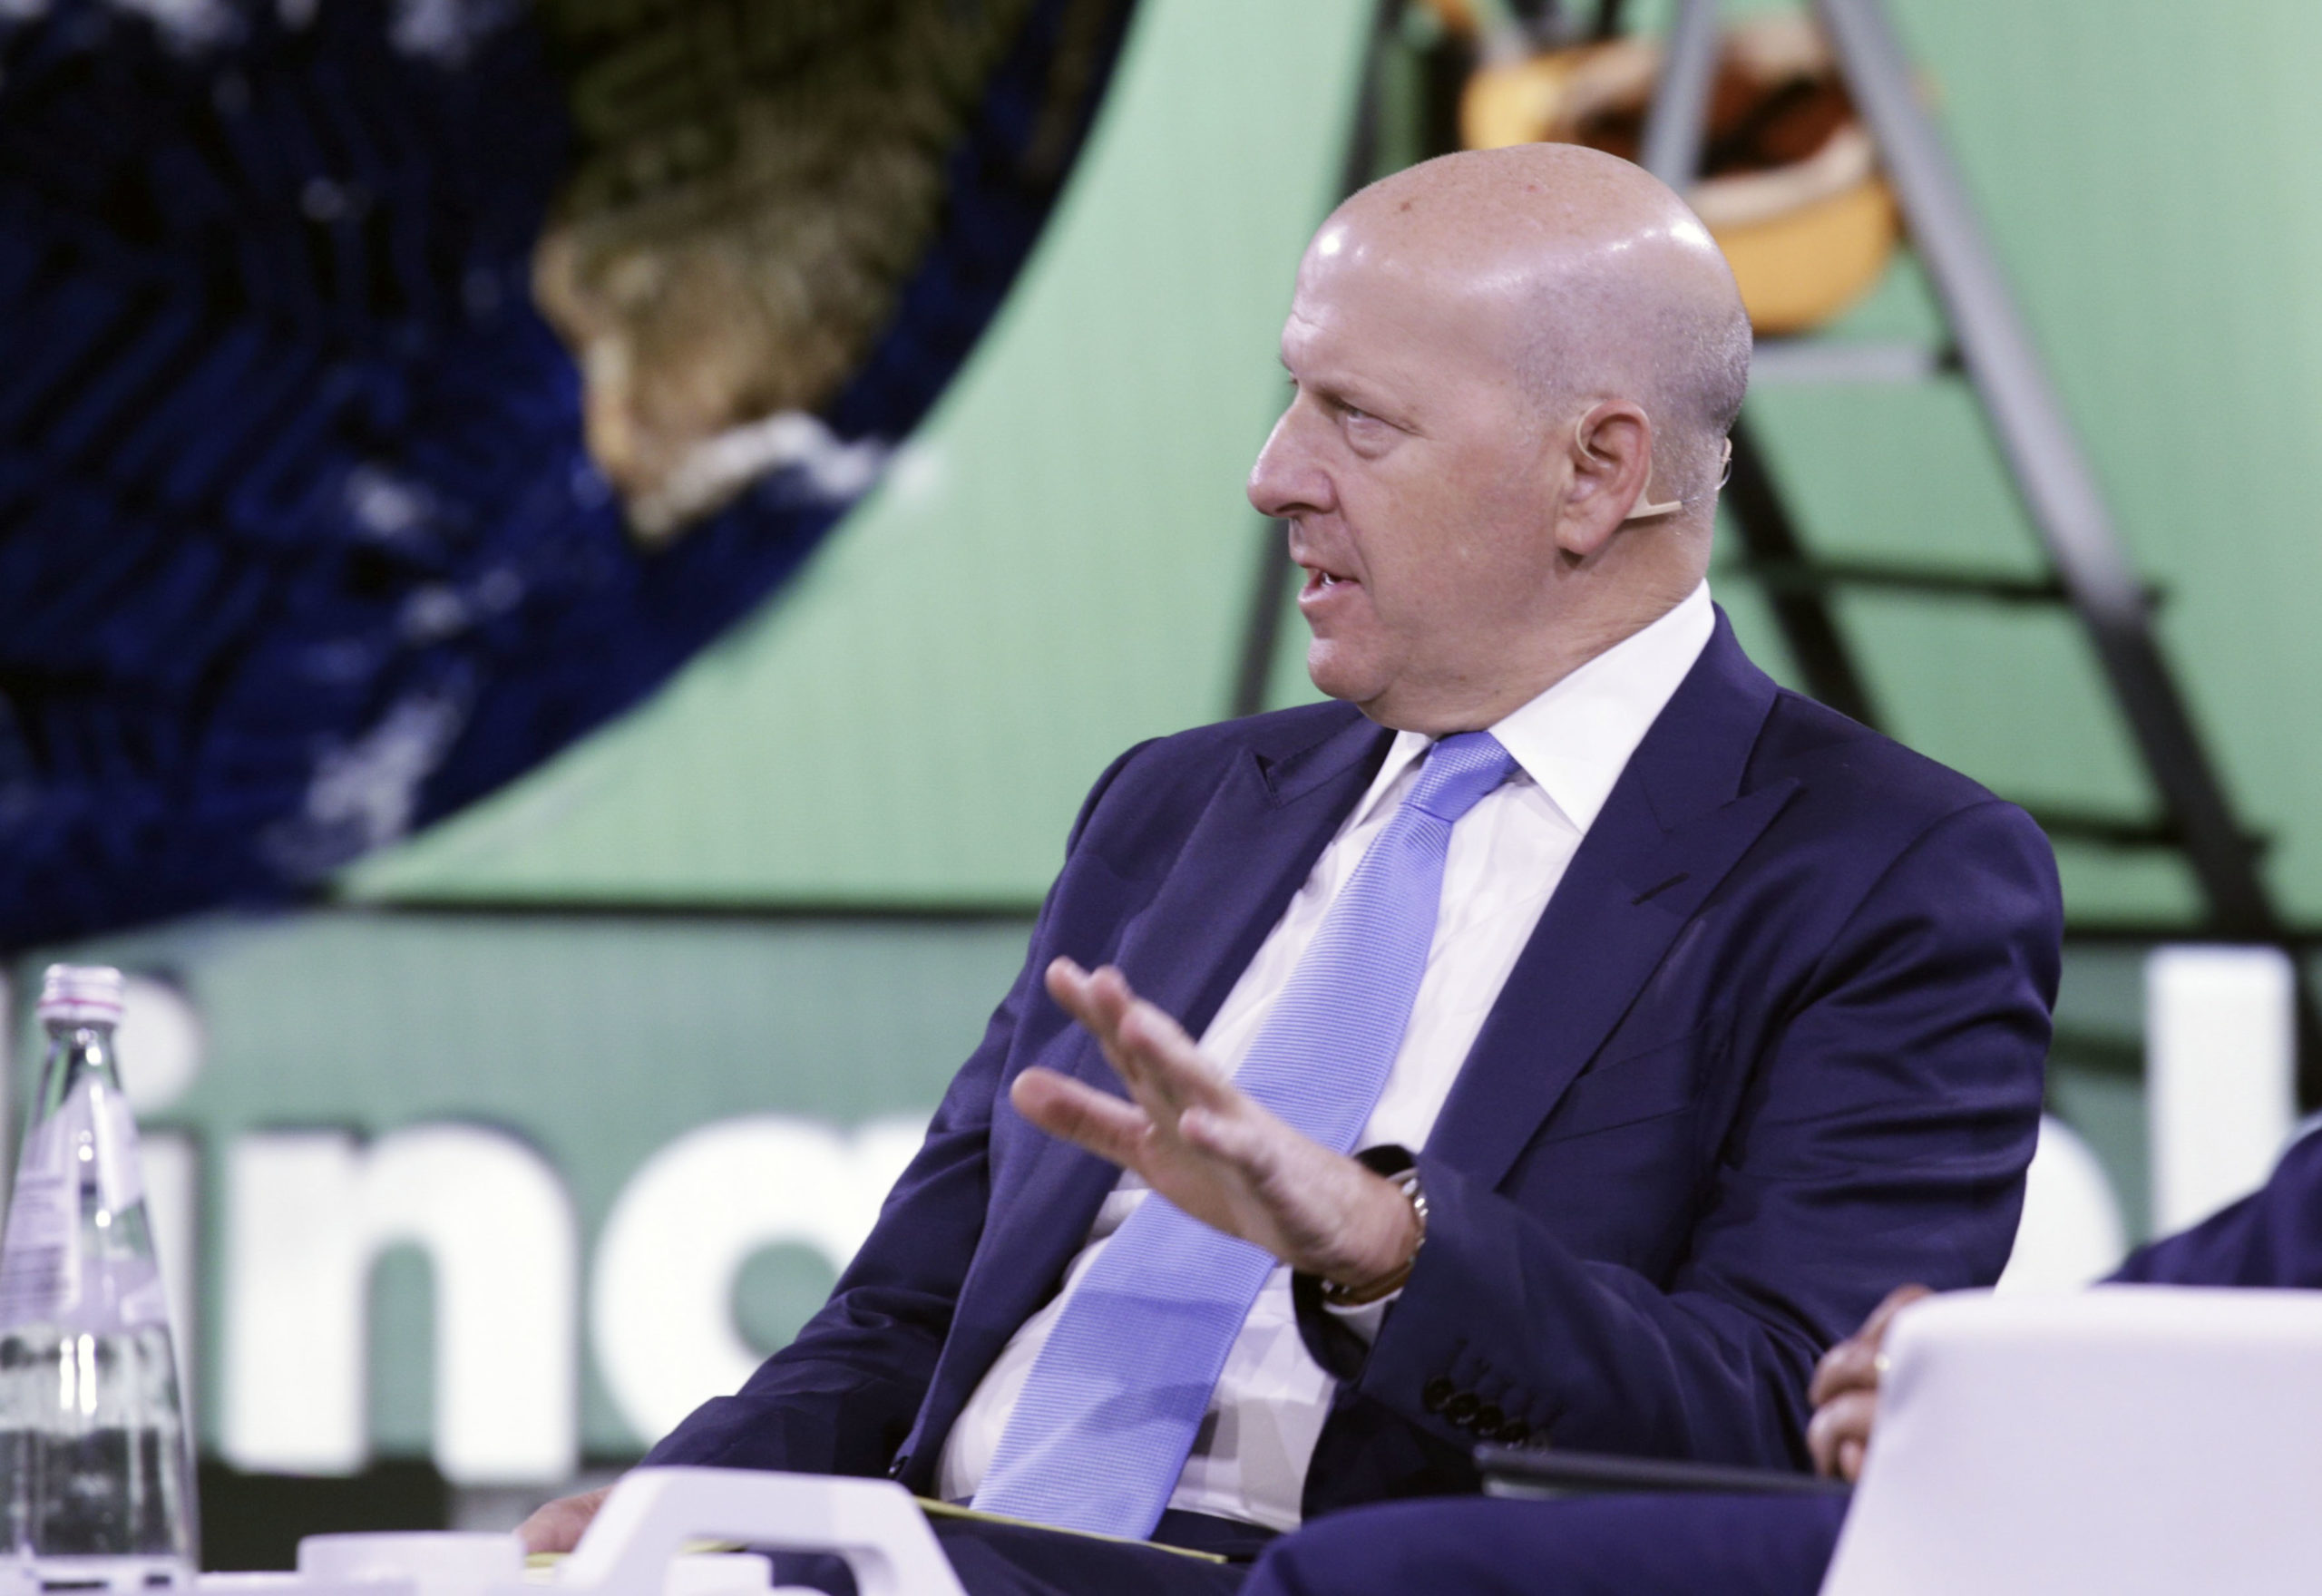 David Solomon, chairman and CEO of Goldman Sachs, speaks during the Bloomberg Global Business Forum in New York on Sept. 25, 2019. (Kena Betancur/AFP via Getty Images)